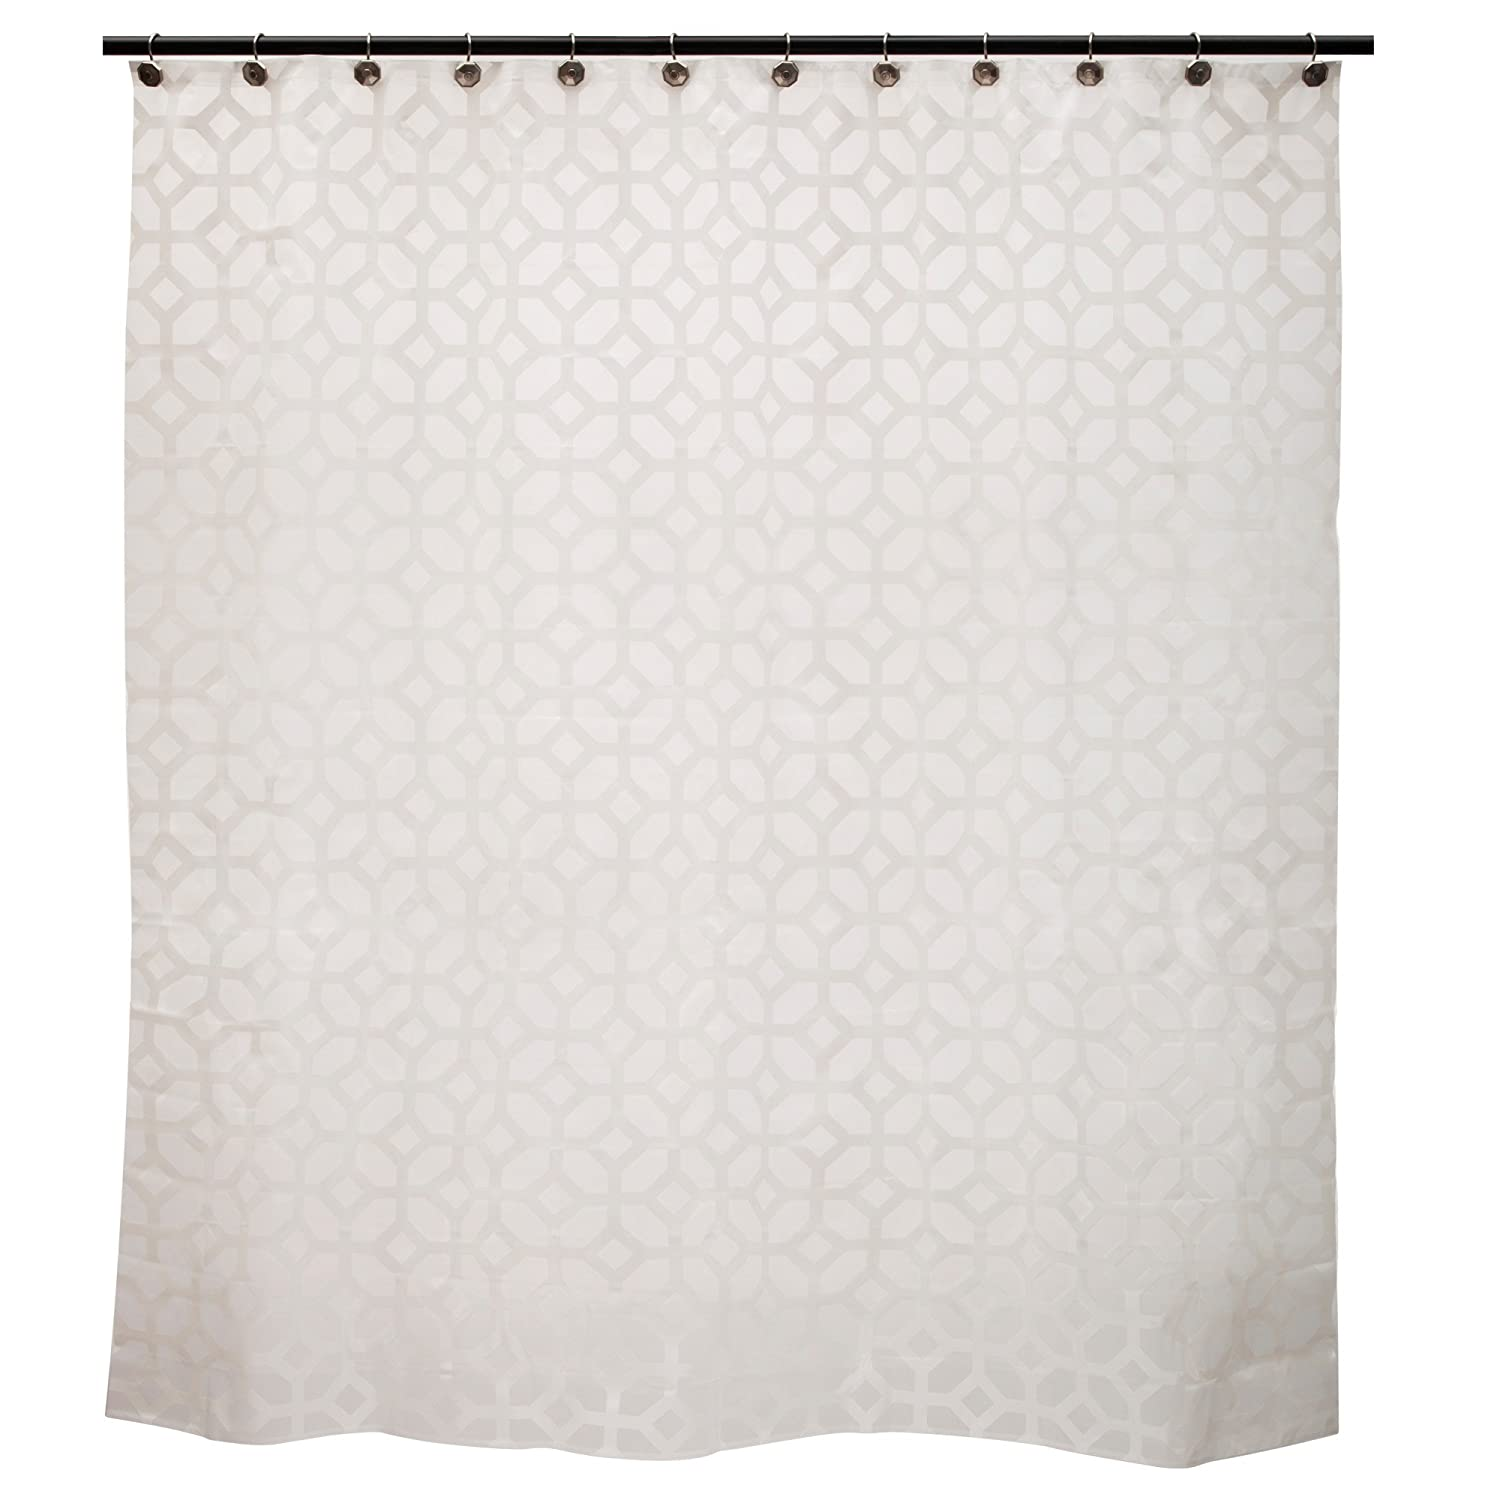 Kenney Geometric Frost Shower Curtain Liner KN61267